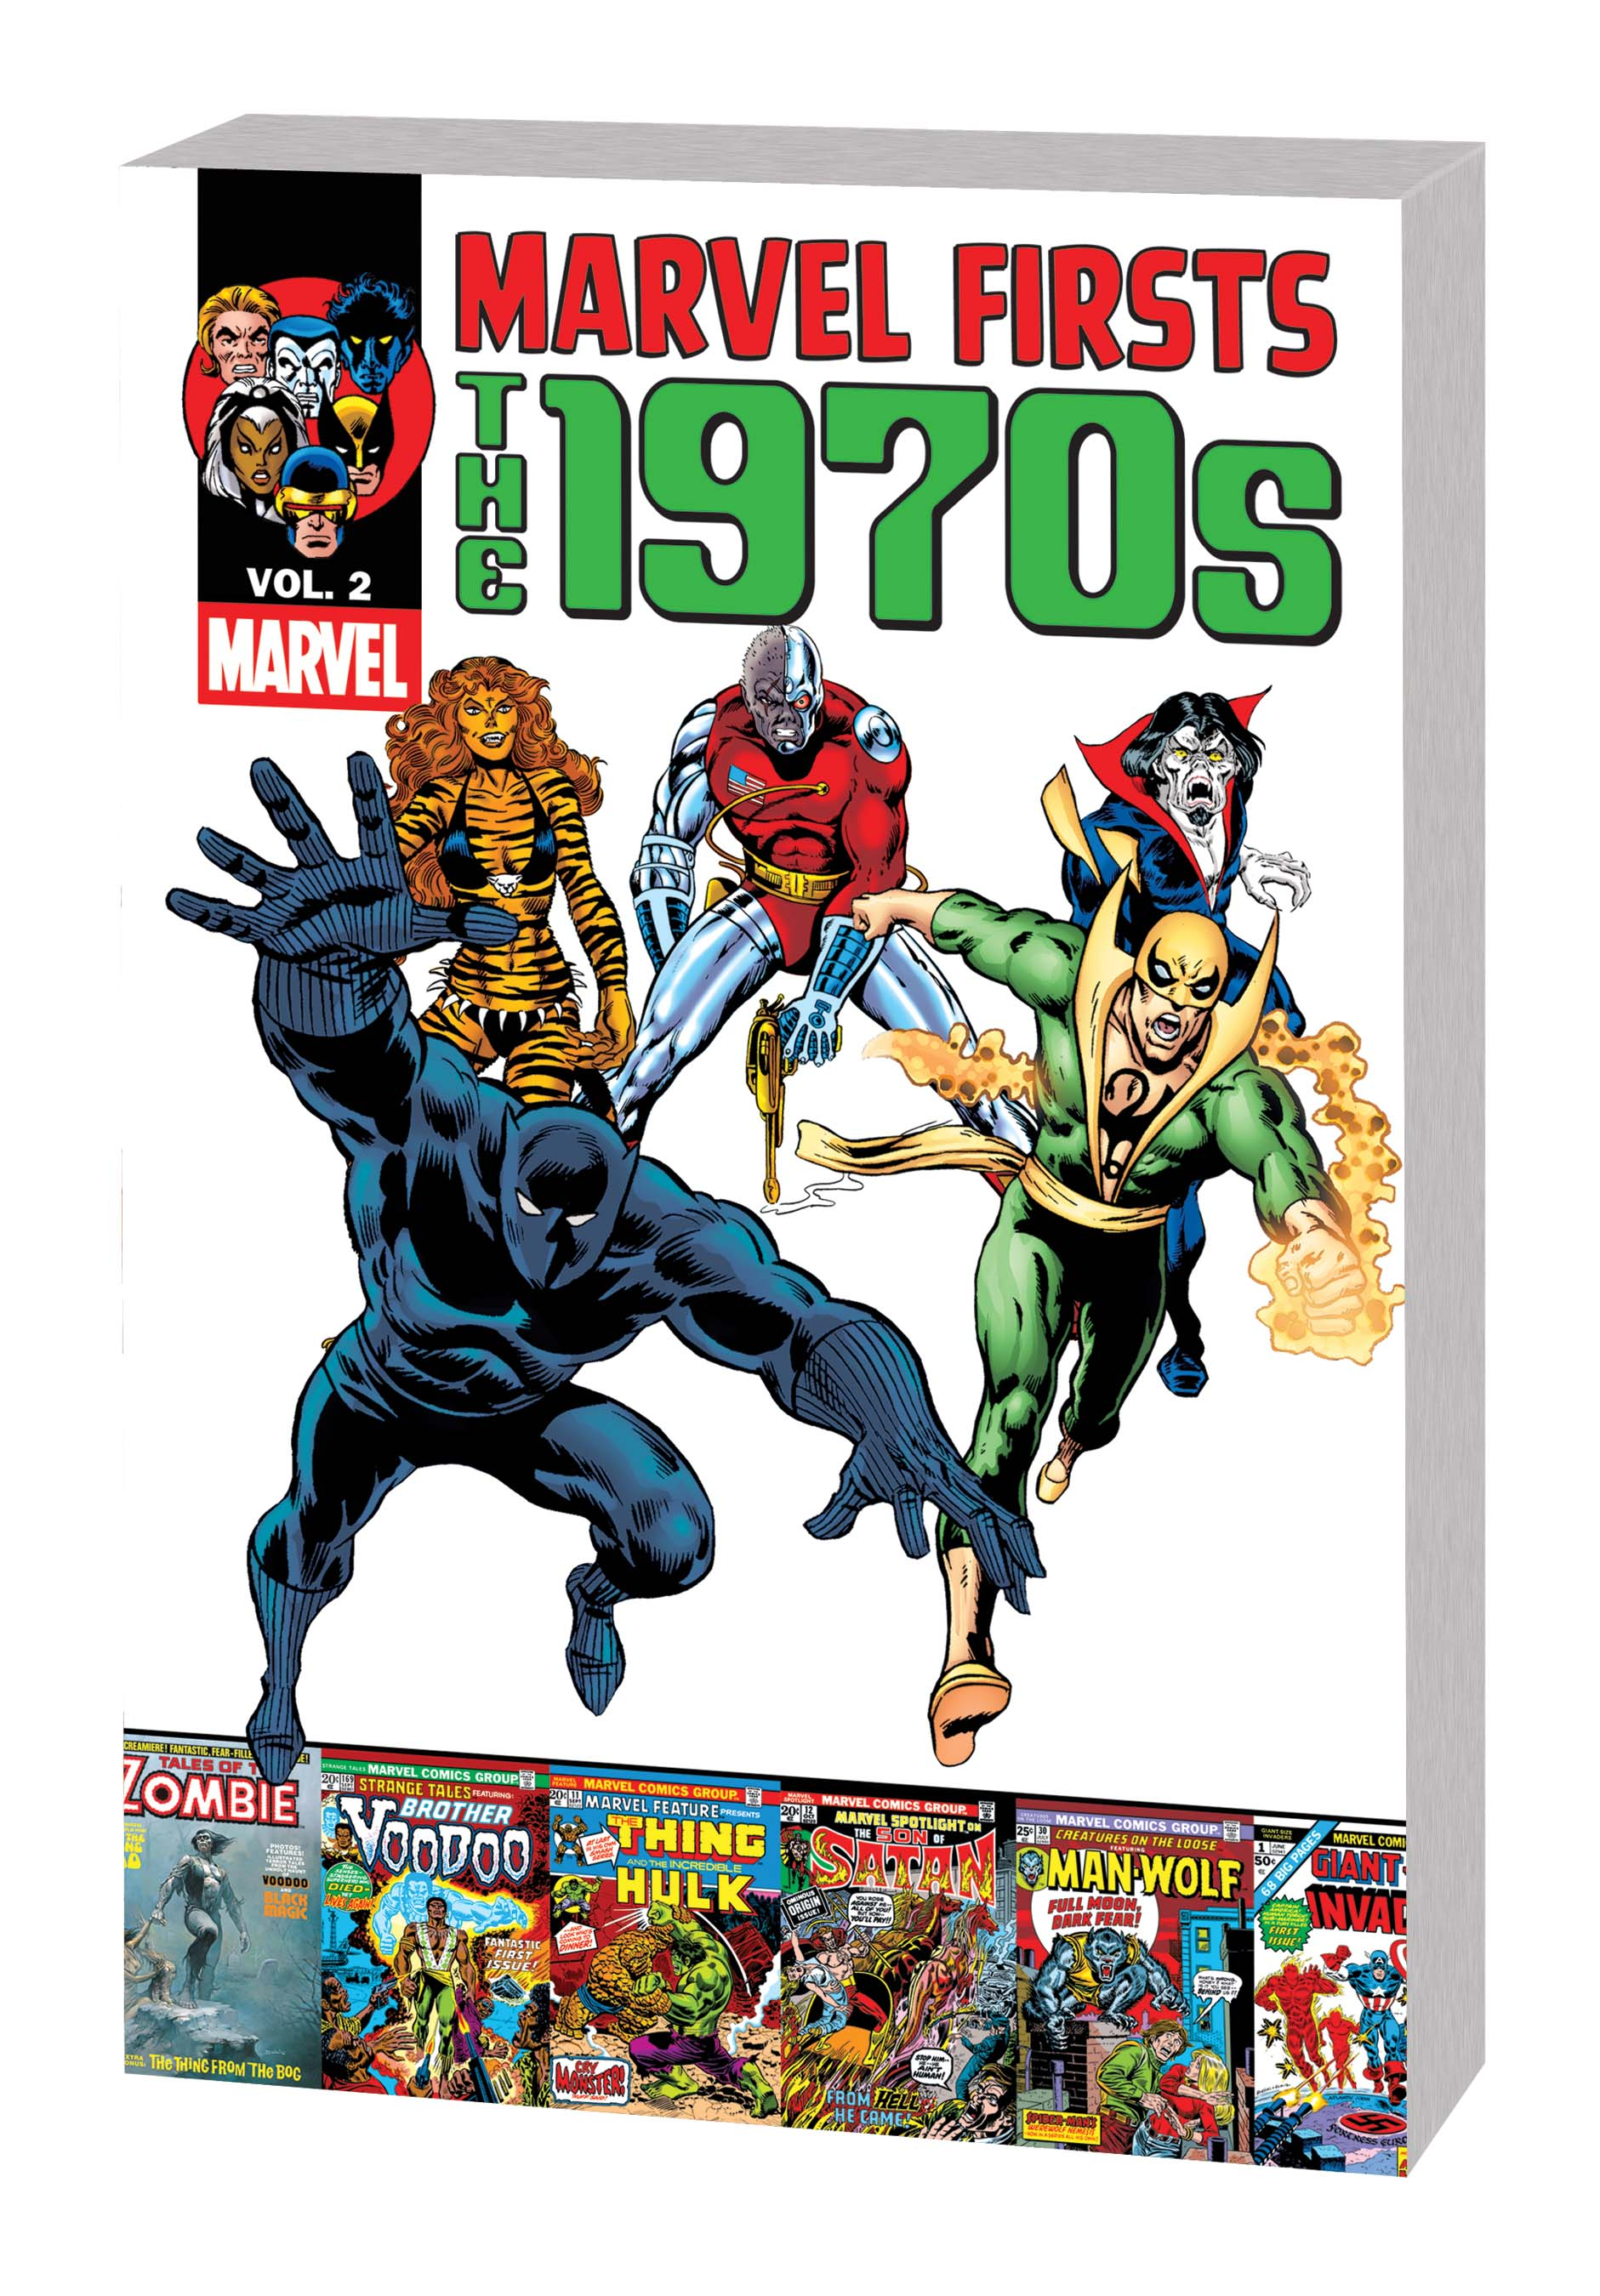 Marvel Firsts: The 1970s Vol. 2 (Trade Paperback)